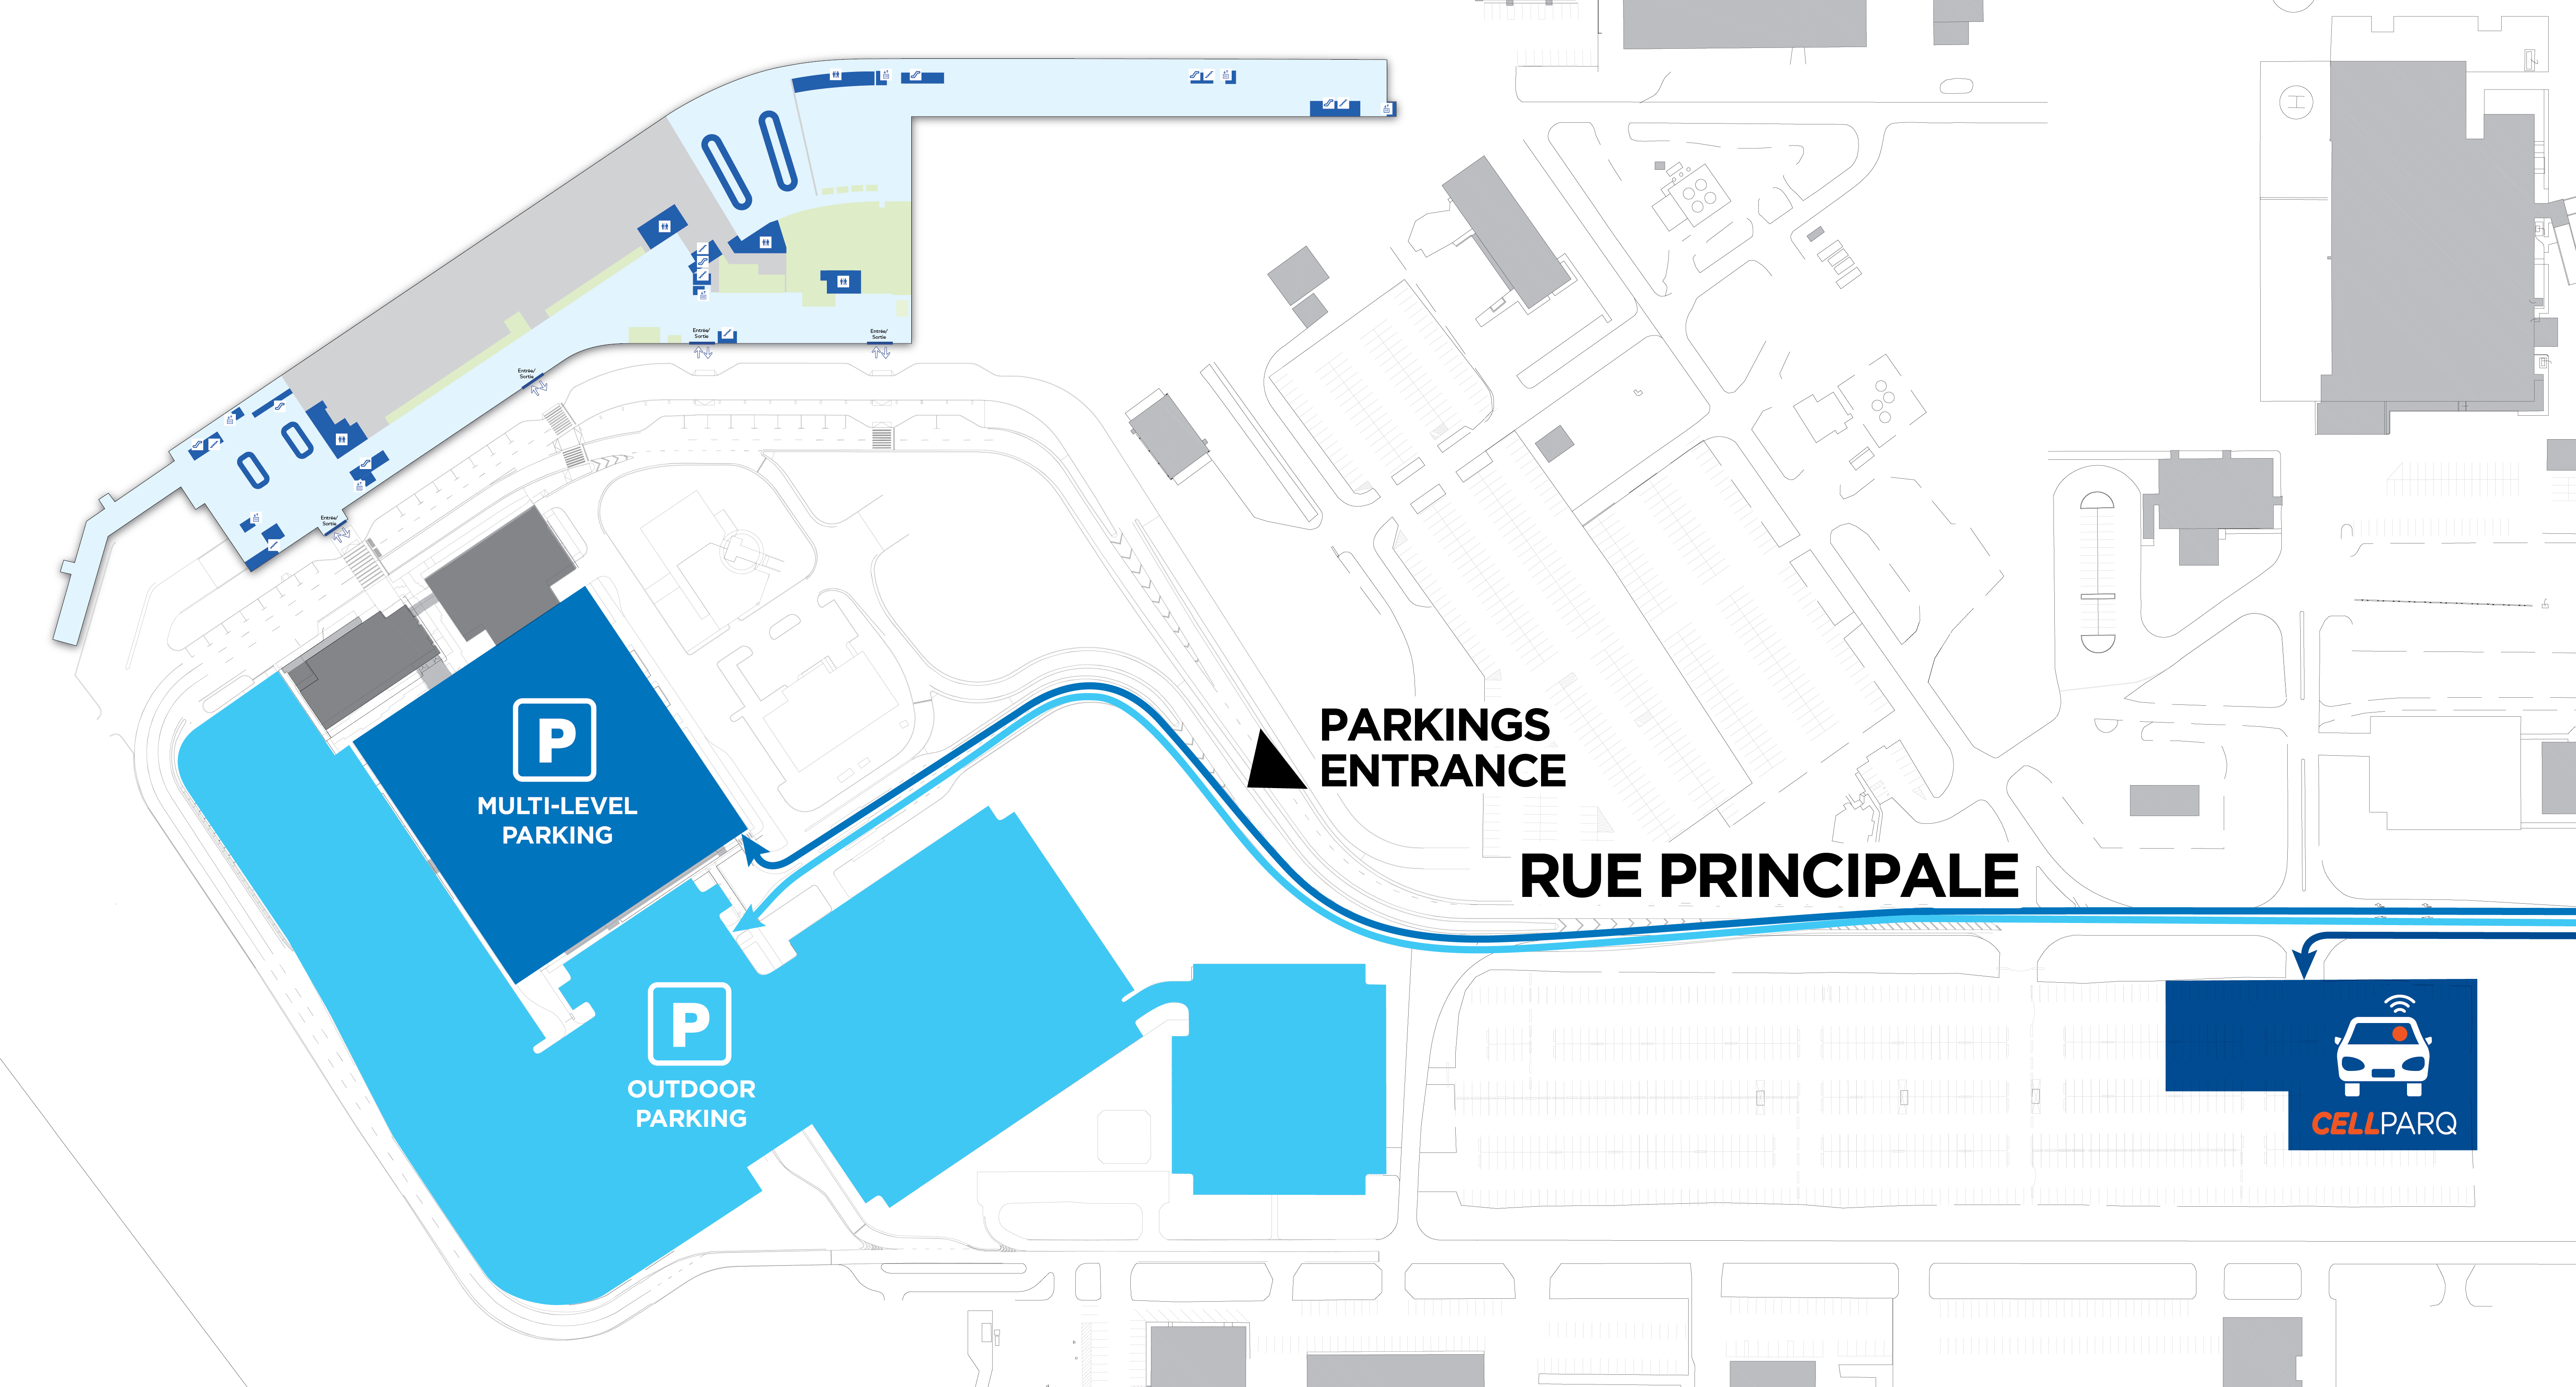 Parking lots map